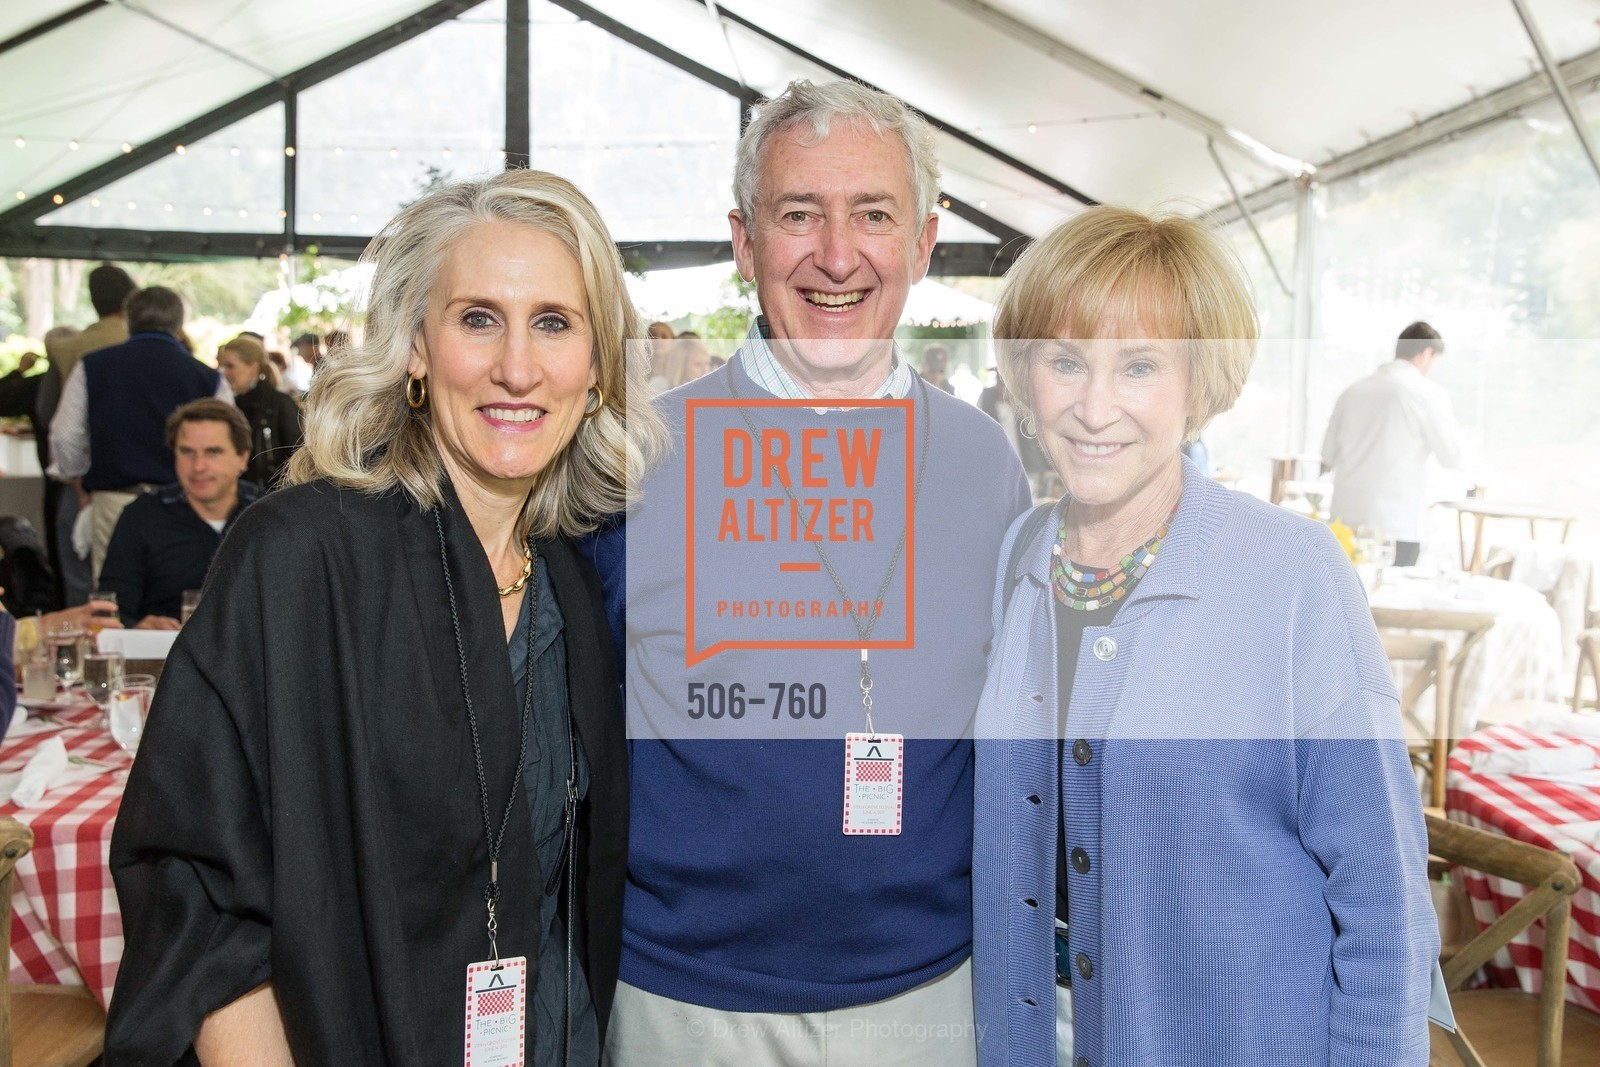 Jamie Myers, Mort Pactor, Anne Denny, The Big Picnic! A Benefit & Concert for STERN GROVE FESTIVAL, US, June 14th, 2015,Drew Altizer, Drew Altizer Photography, full-service agency, private events, San Francisco photographer, photographer california